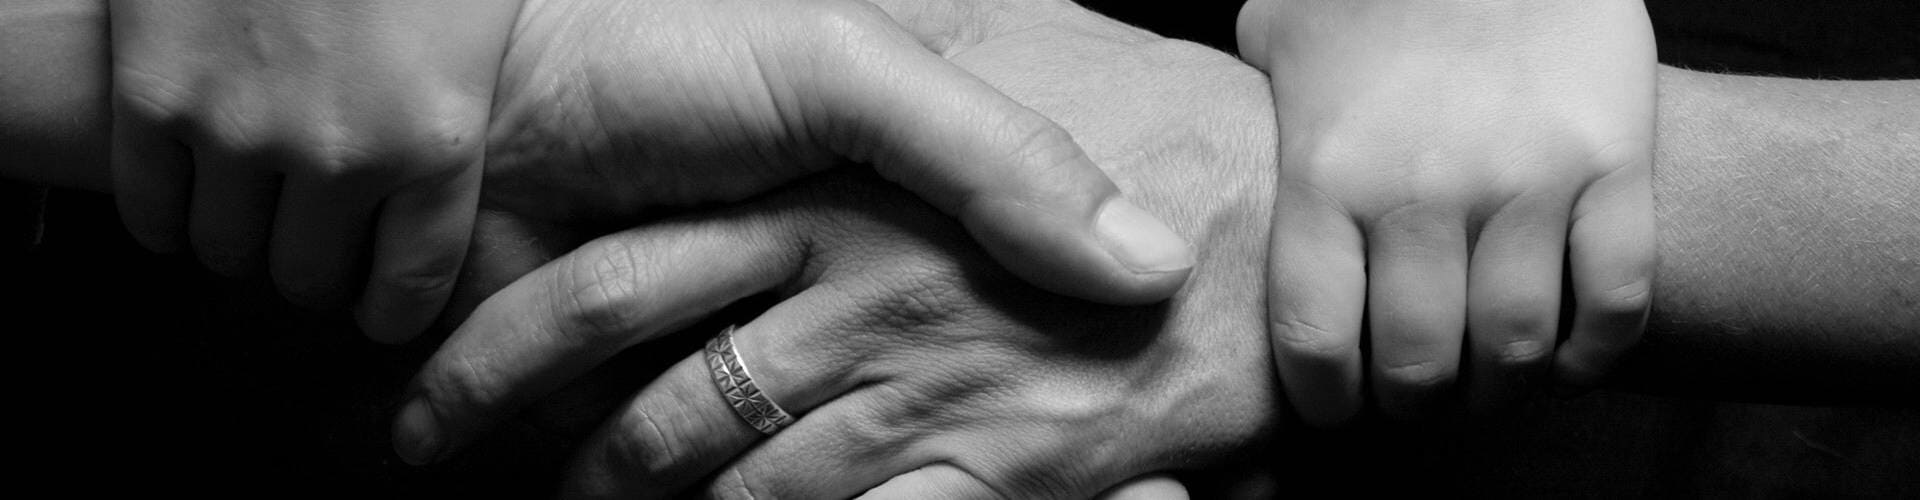 Hands being held in the spirit of giving